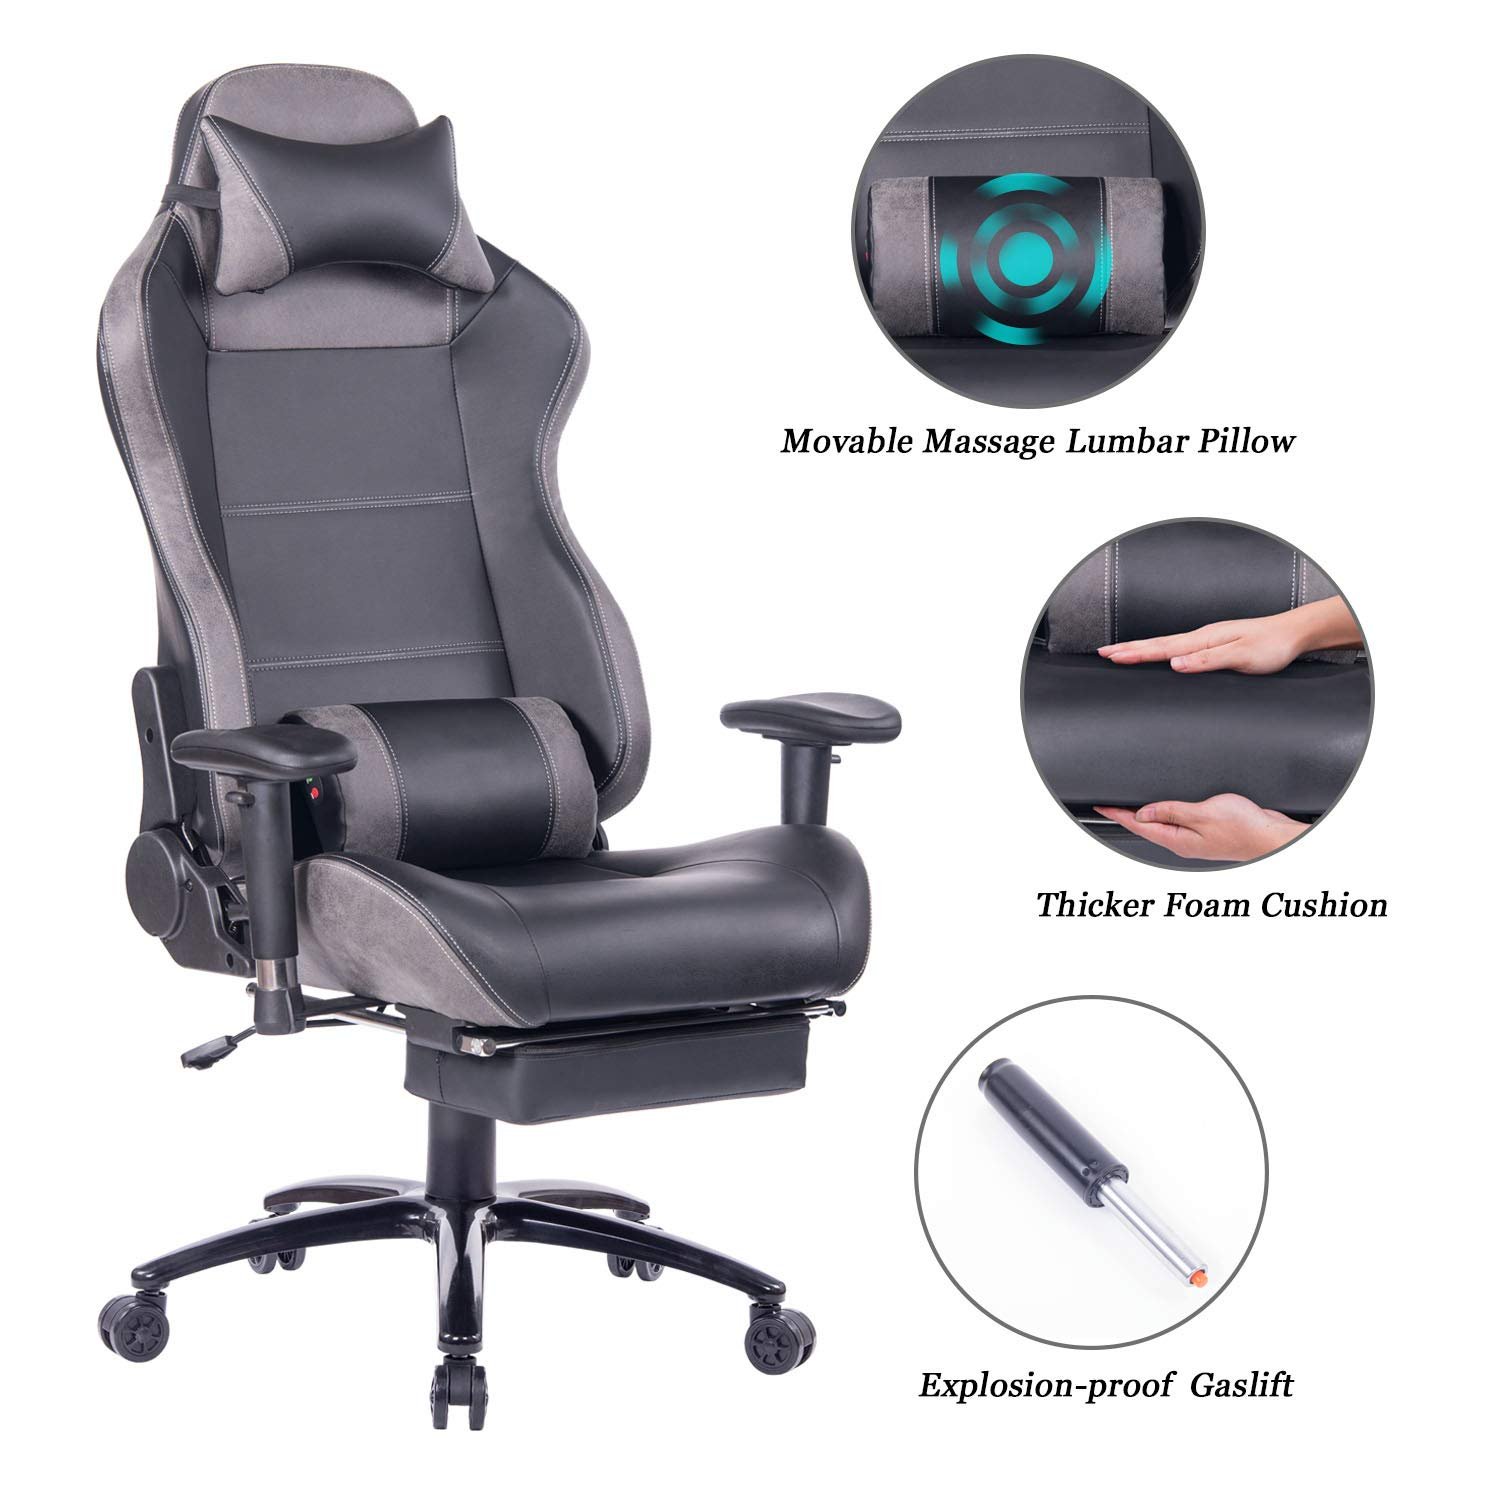 Blue Whale Massage Gaming Chair with Footrest Matel Base-Memory Foam Adjustable Backrest Reclining PC Computer Video Gamer Chair Racing High Back Game Chairs PU Leather Desk Office Chair BW 263 Grey